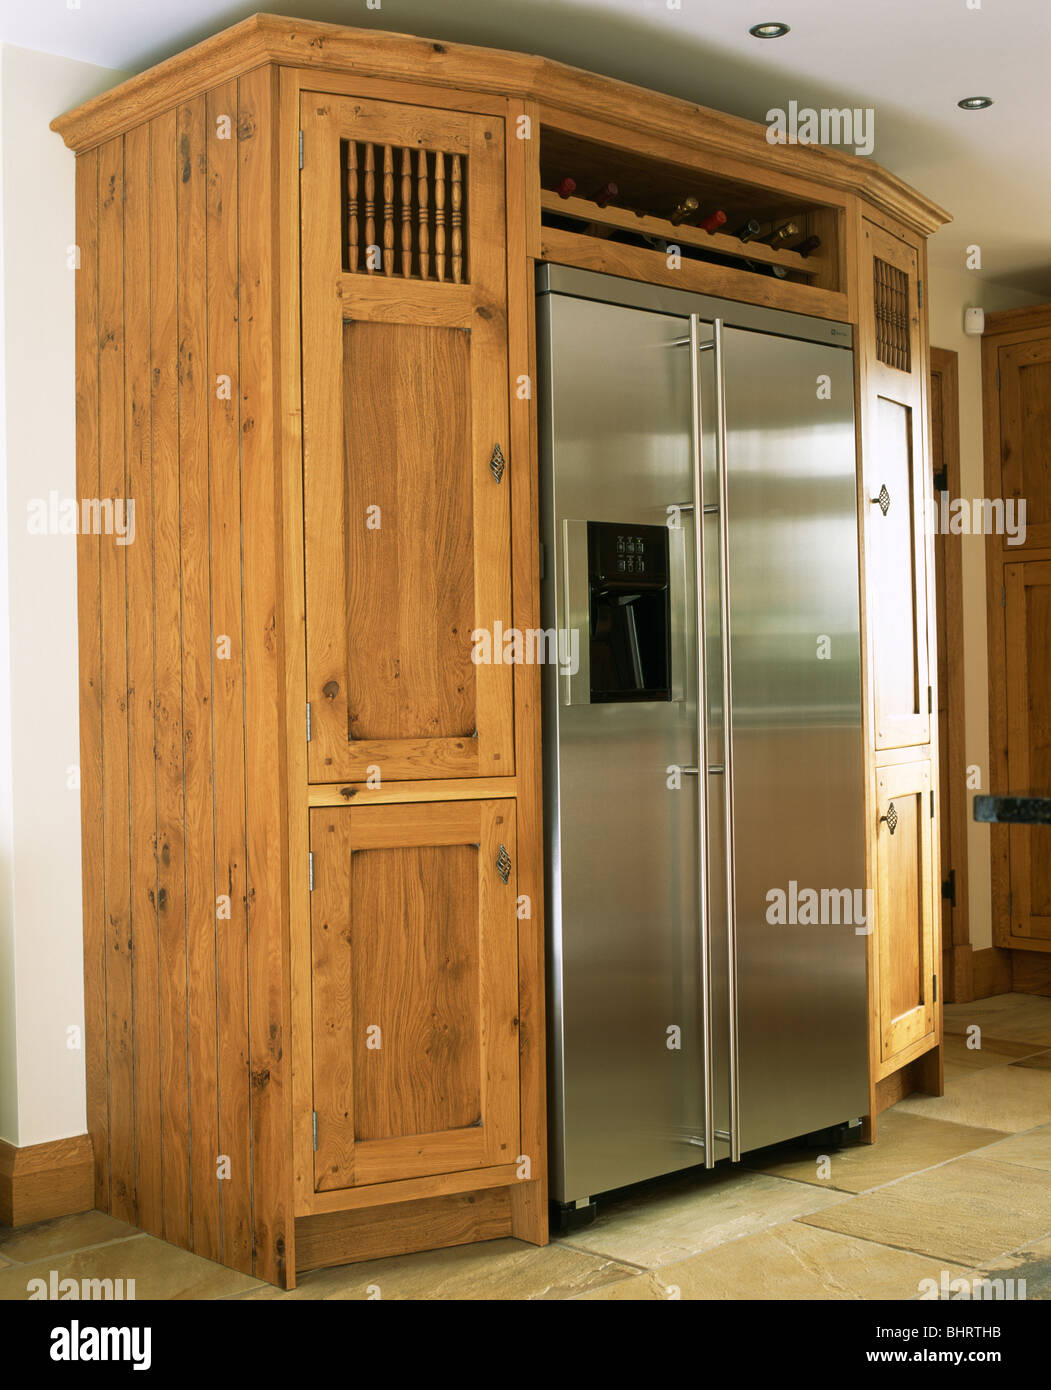 Large Stainless Steel American Style Fridge Freezer Built Into Fitted Oak  Storage Cupboard In Modern Kitchen